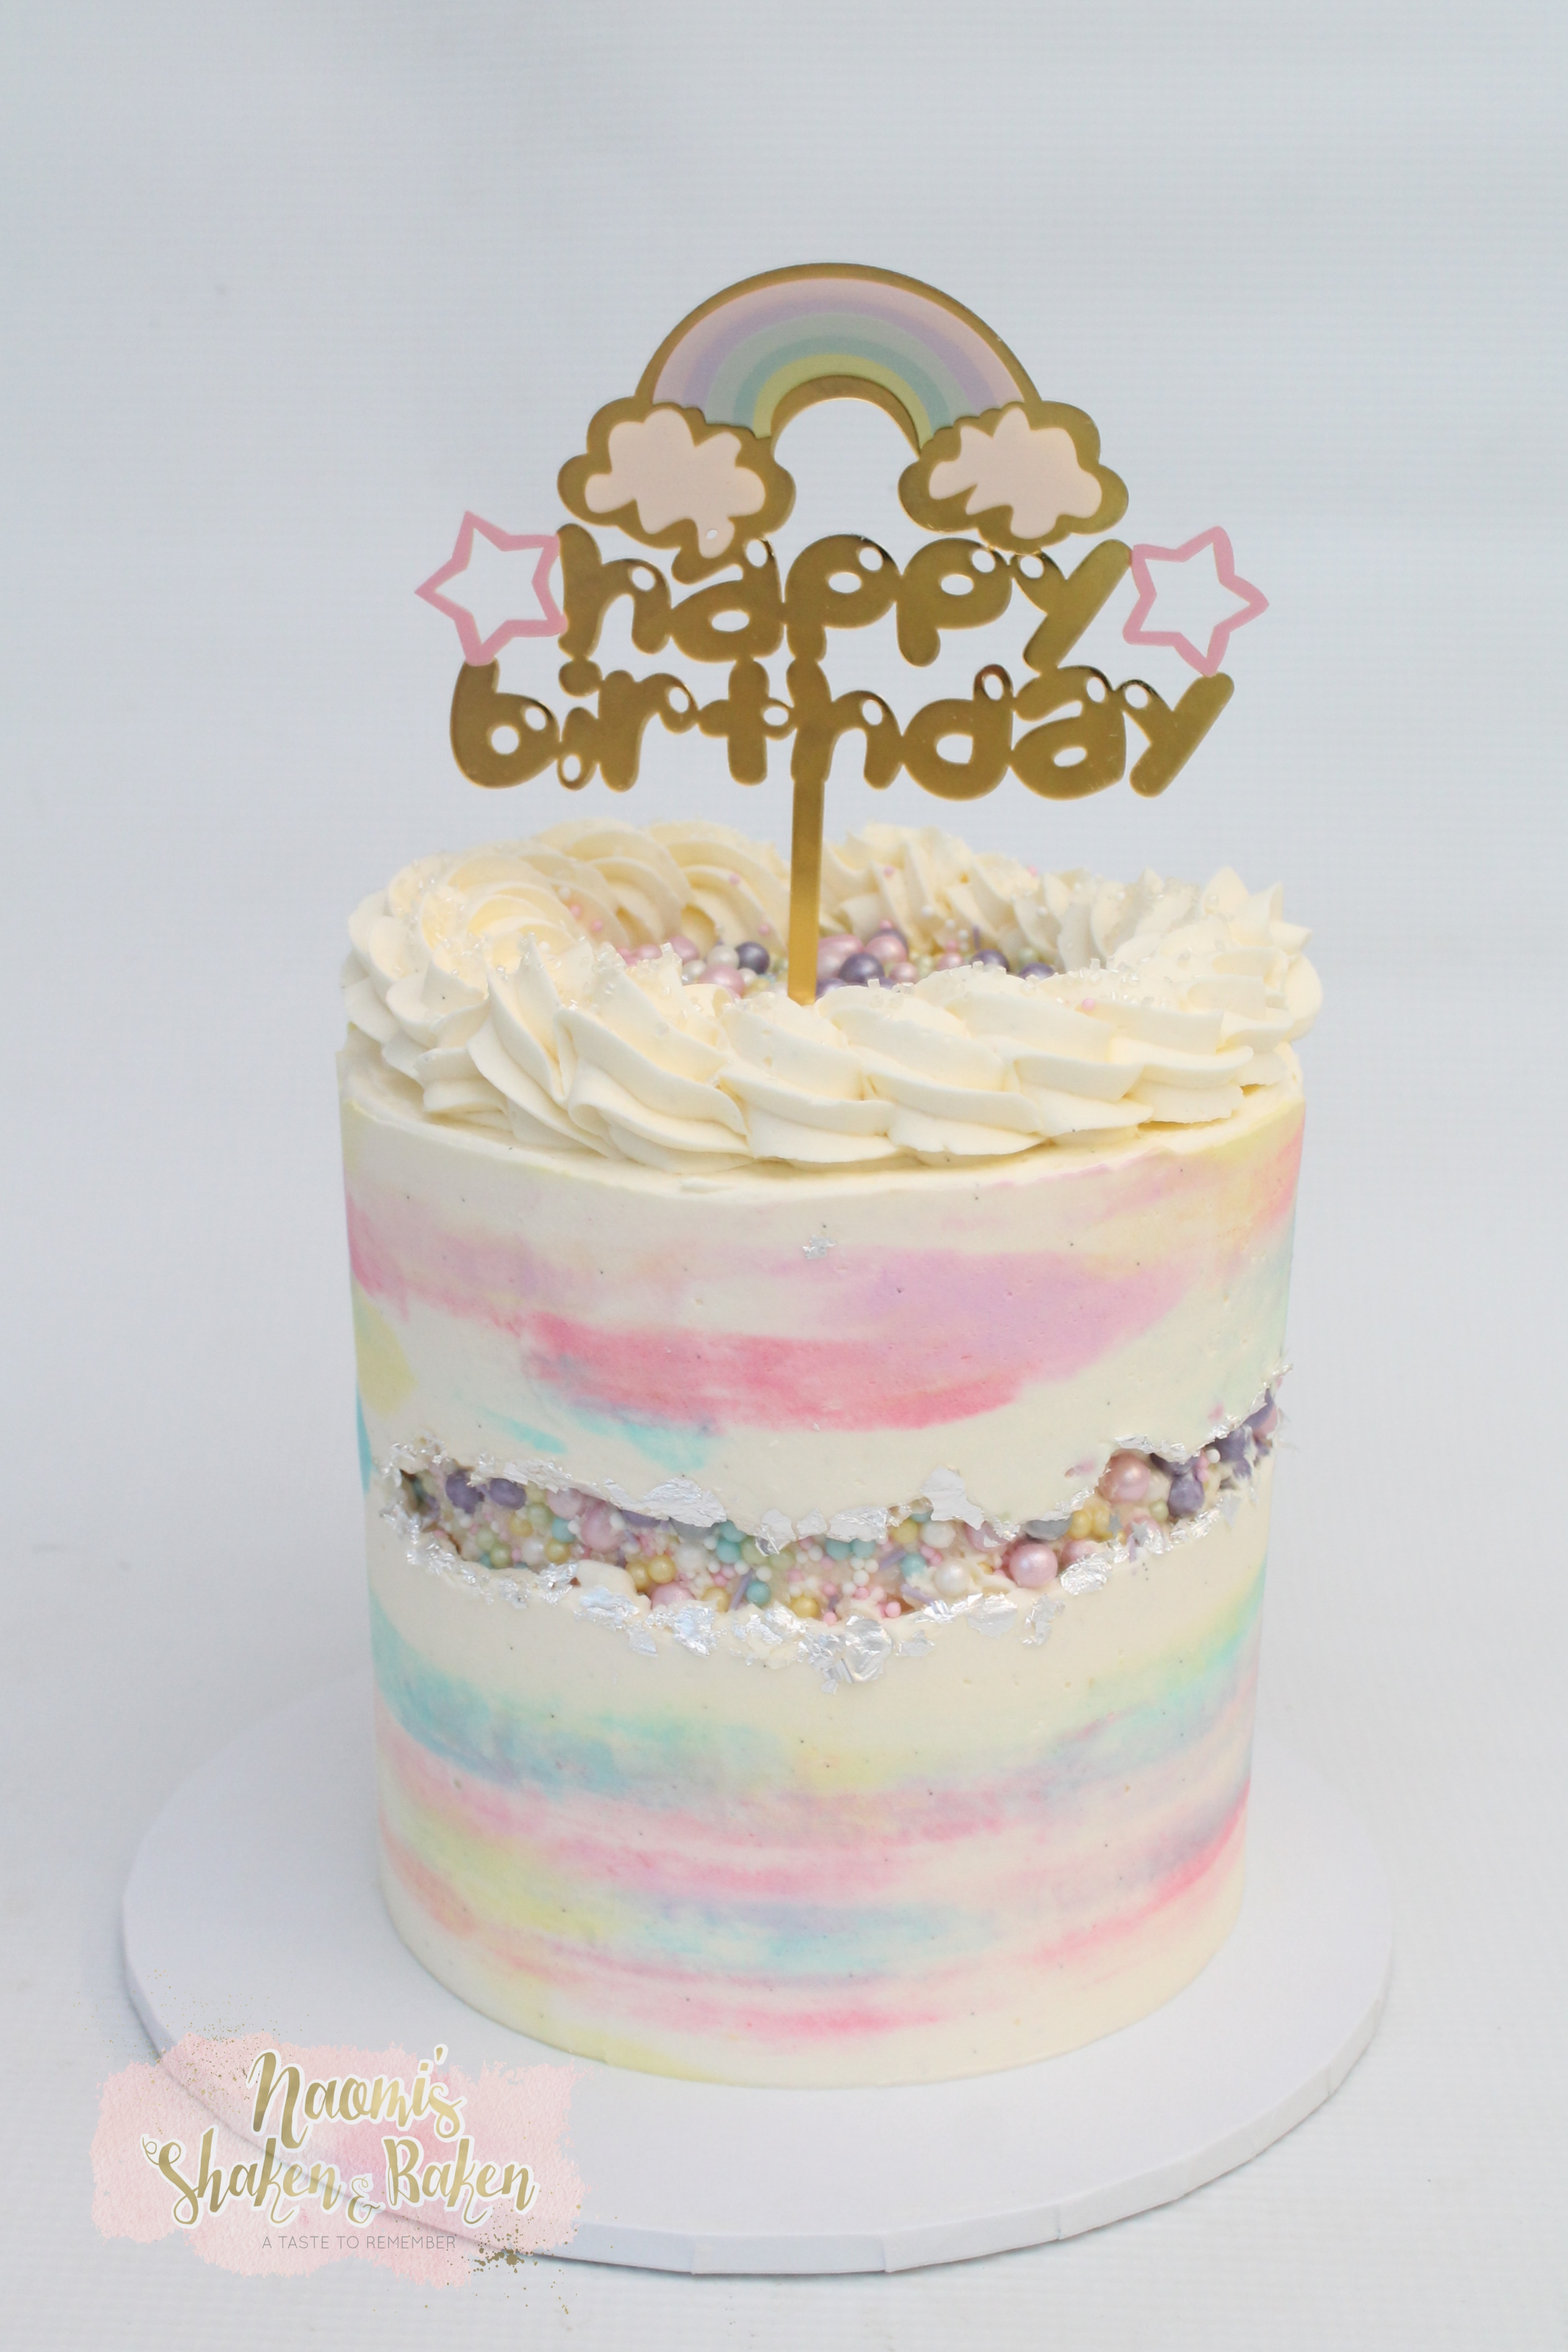 Terrific Naomis Shaken Baken Caboolture Custom Cakes For All Events Funny Birthday Cards Online Unhofree Goldxyz